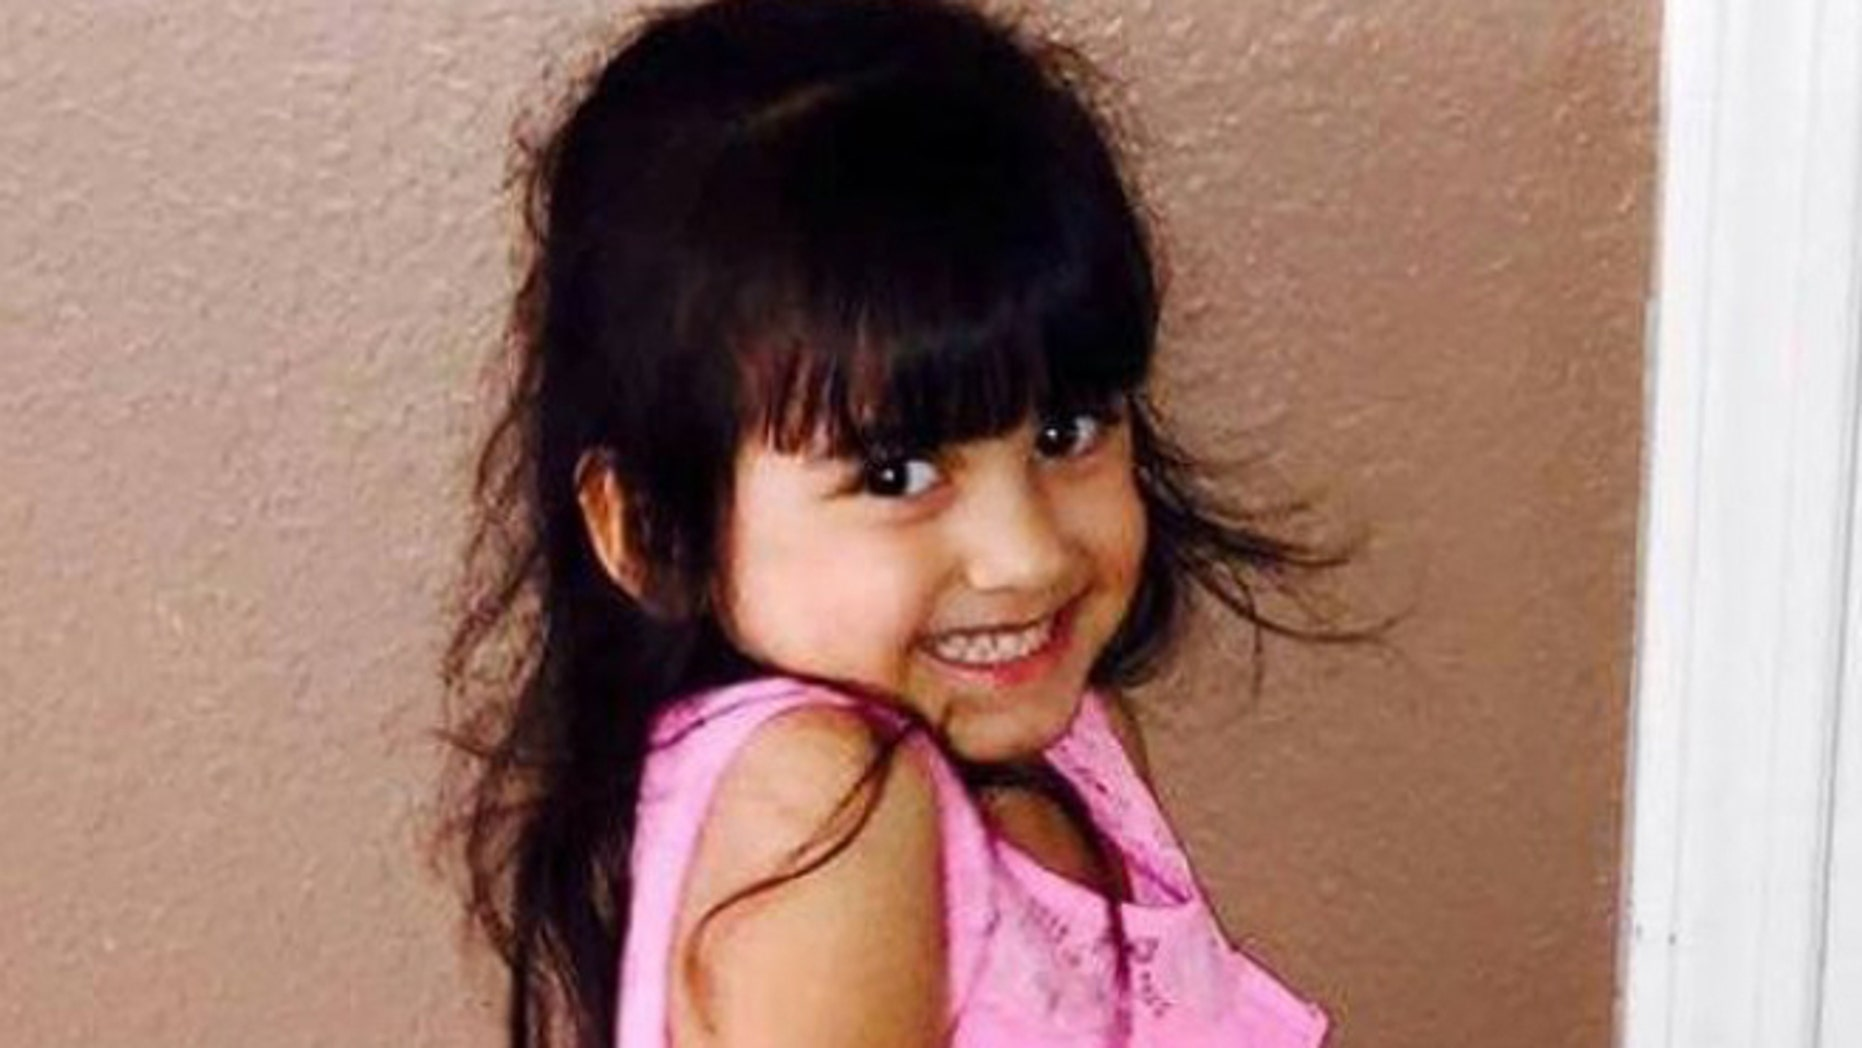 Lily Garcia was killed during an alleged road rage incident in New Mexico.